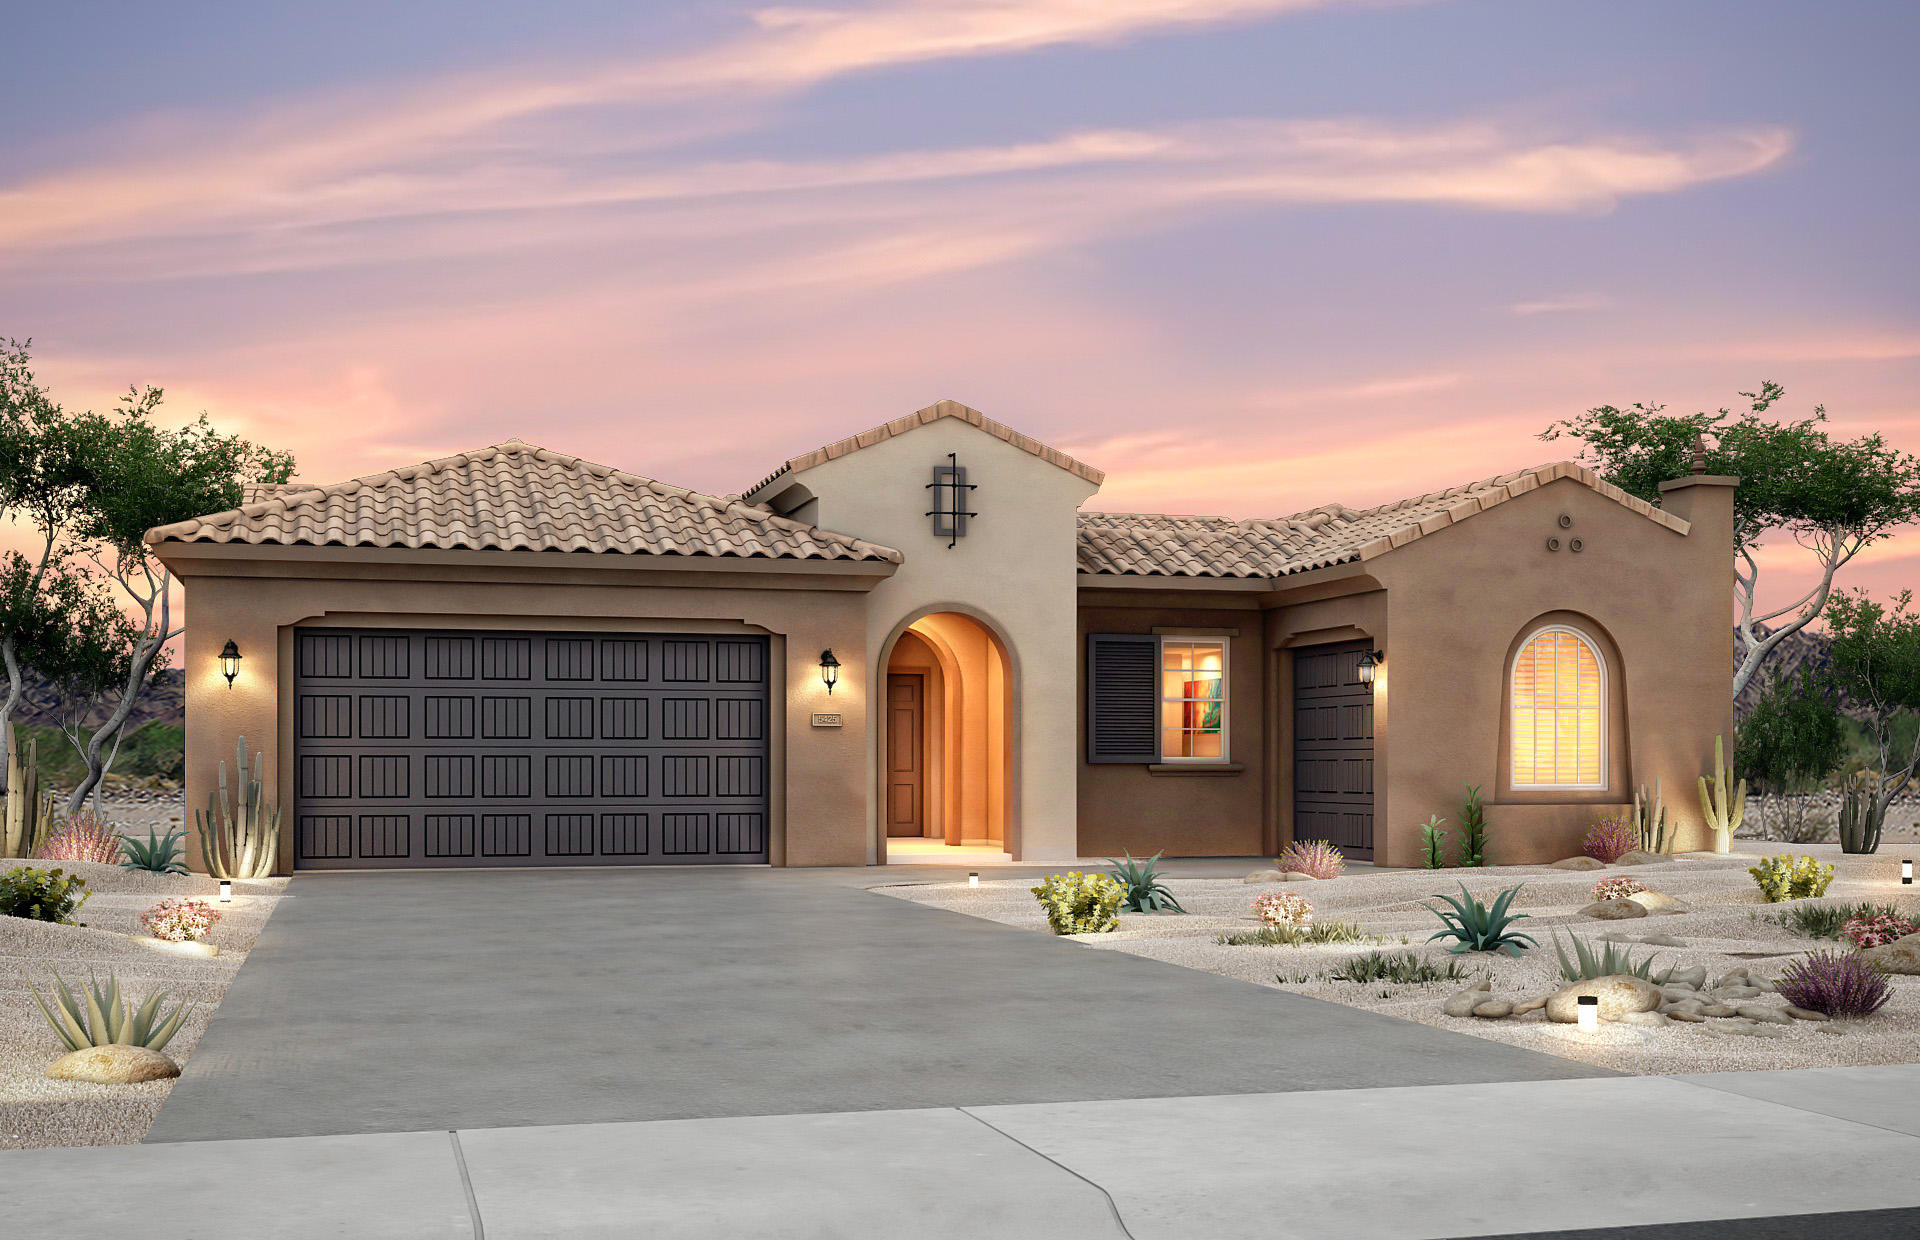 9315 NW Wind Caves Way, Northwest Albuquerque and Northwest Heights, New Mexico